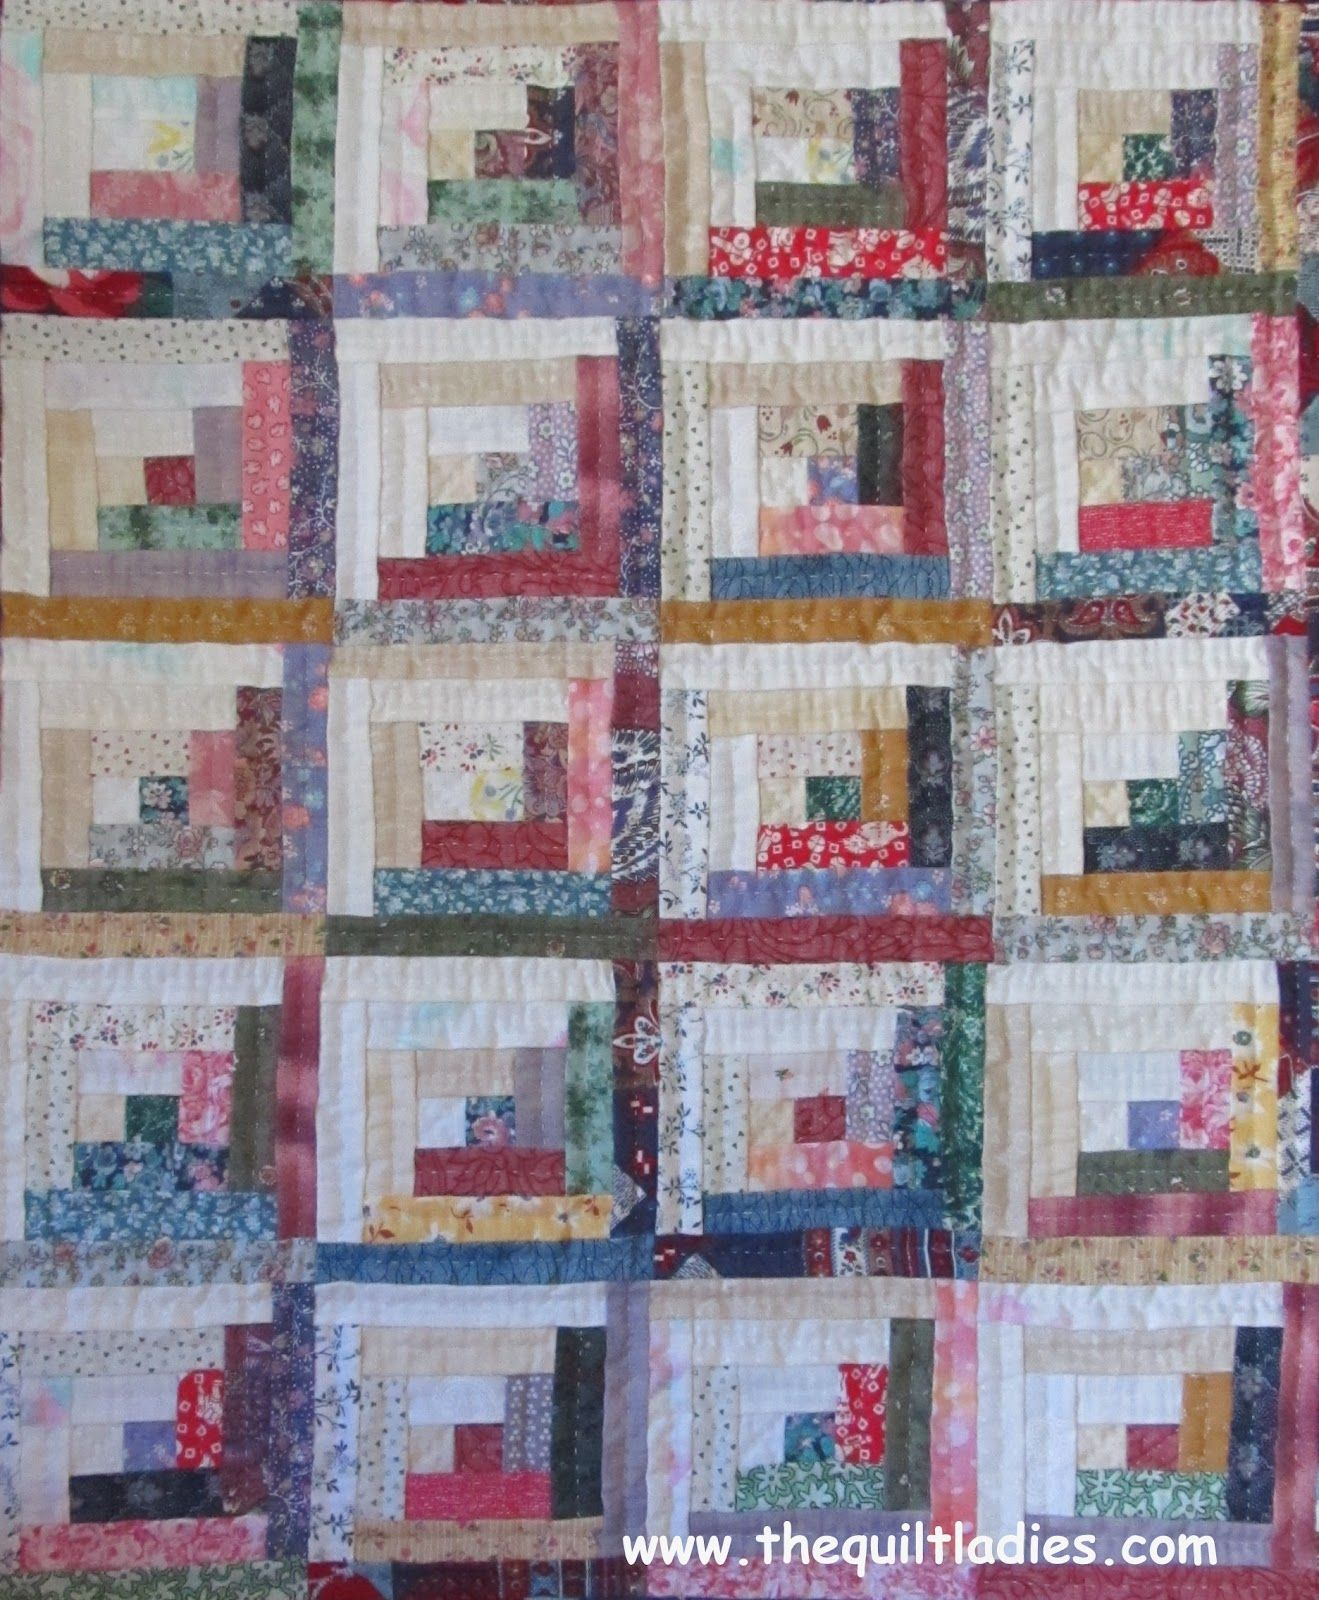 Incroyable FREE Mini Log Cabin Quilt Pattern From The Quilt Ladies